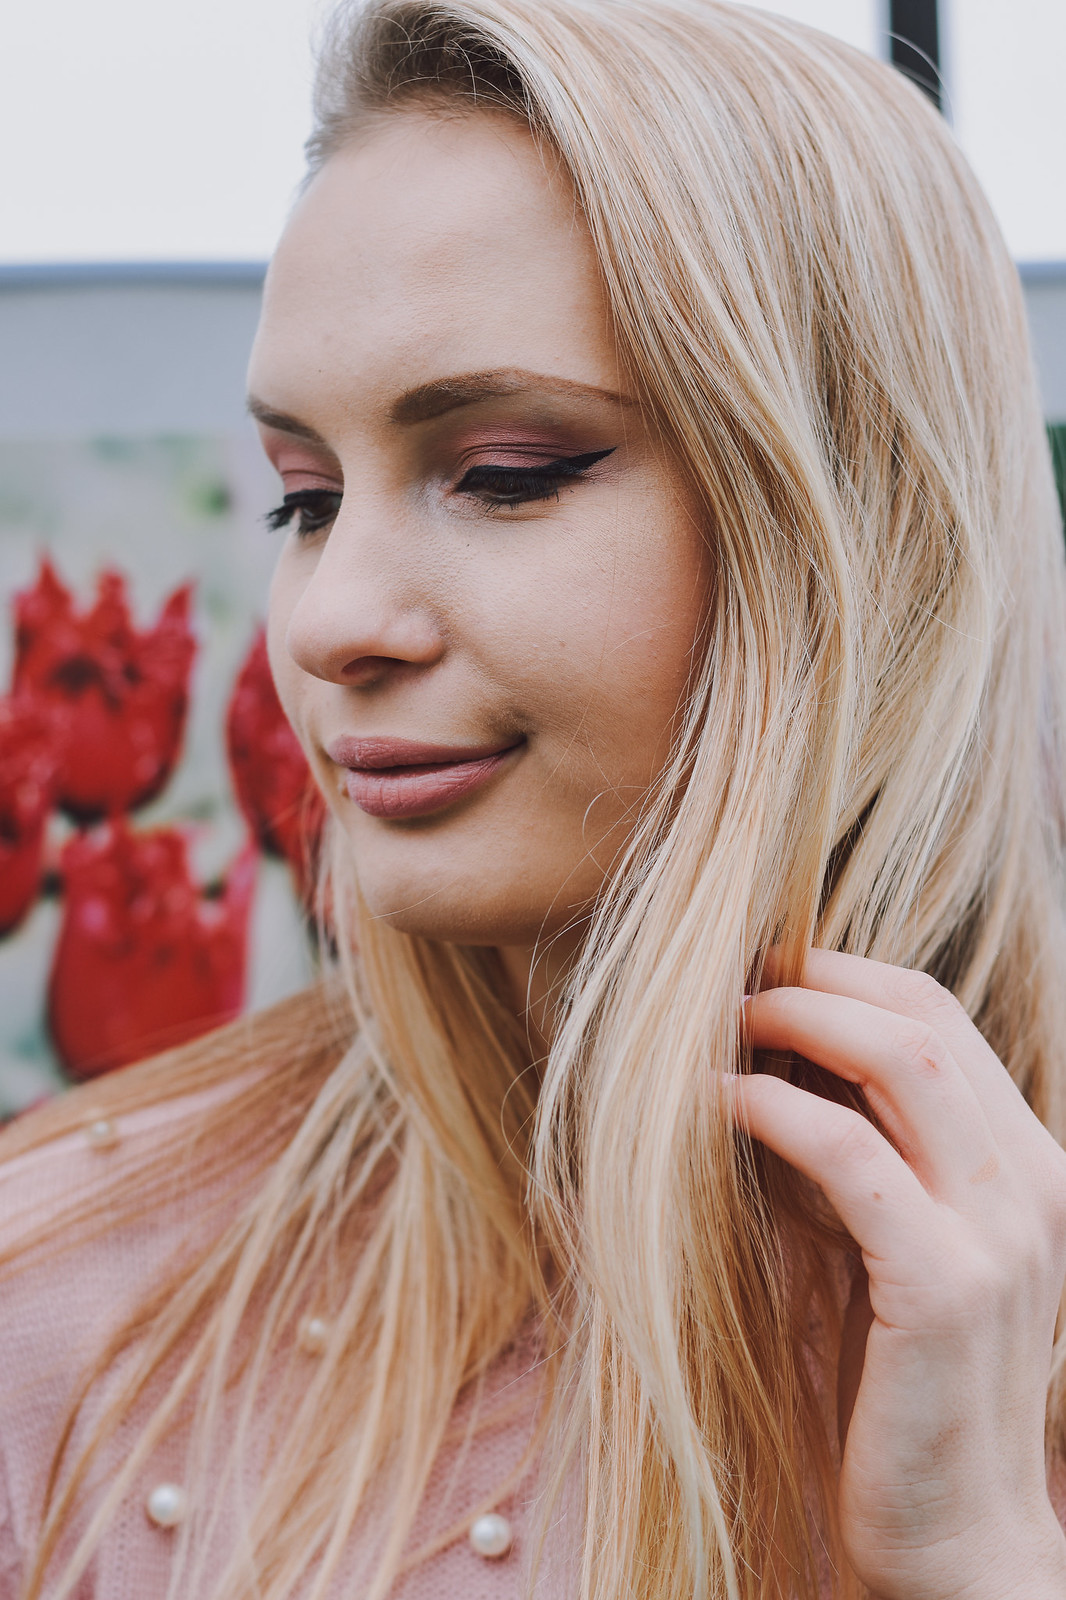 Latvian beauty blogger